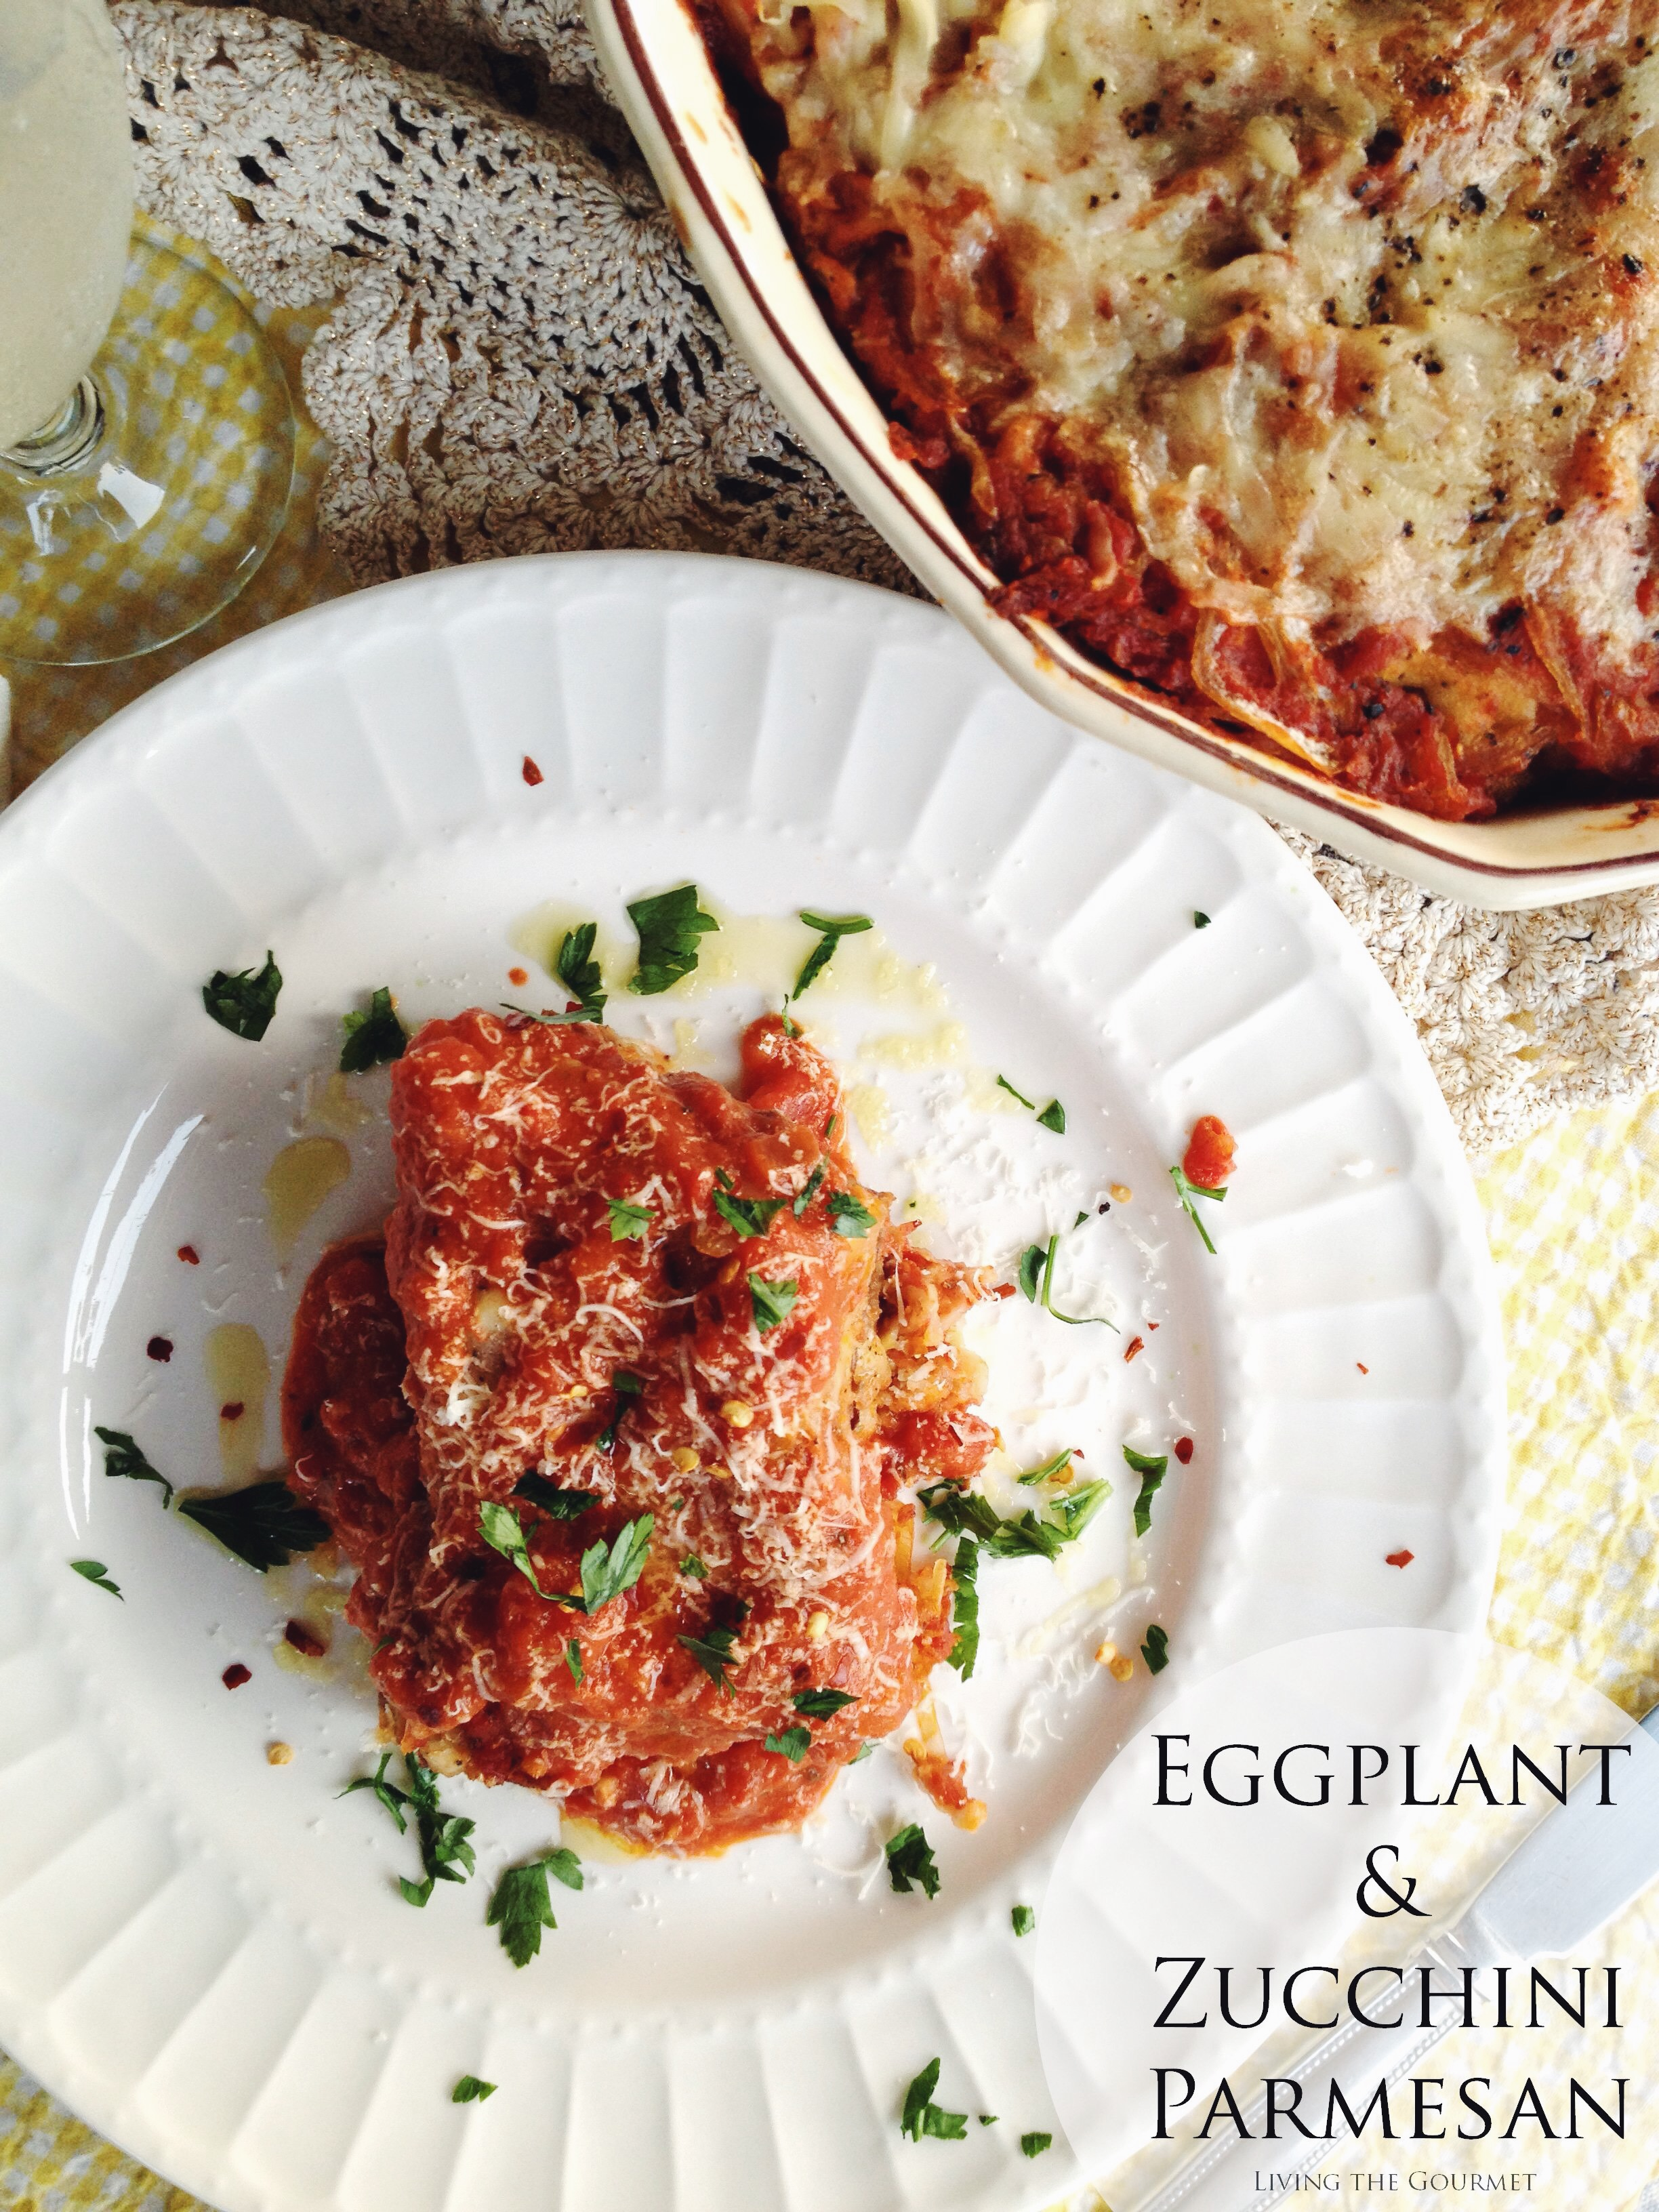 Living the Gourmet: Eggplant and Zucchini Parmesan PLUS $50 VISA Giveaway | #FallForFlavor #Ad